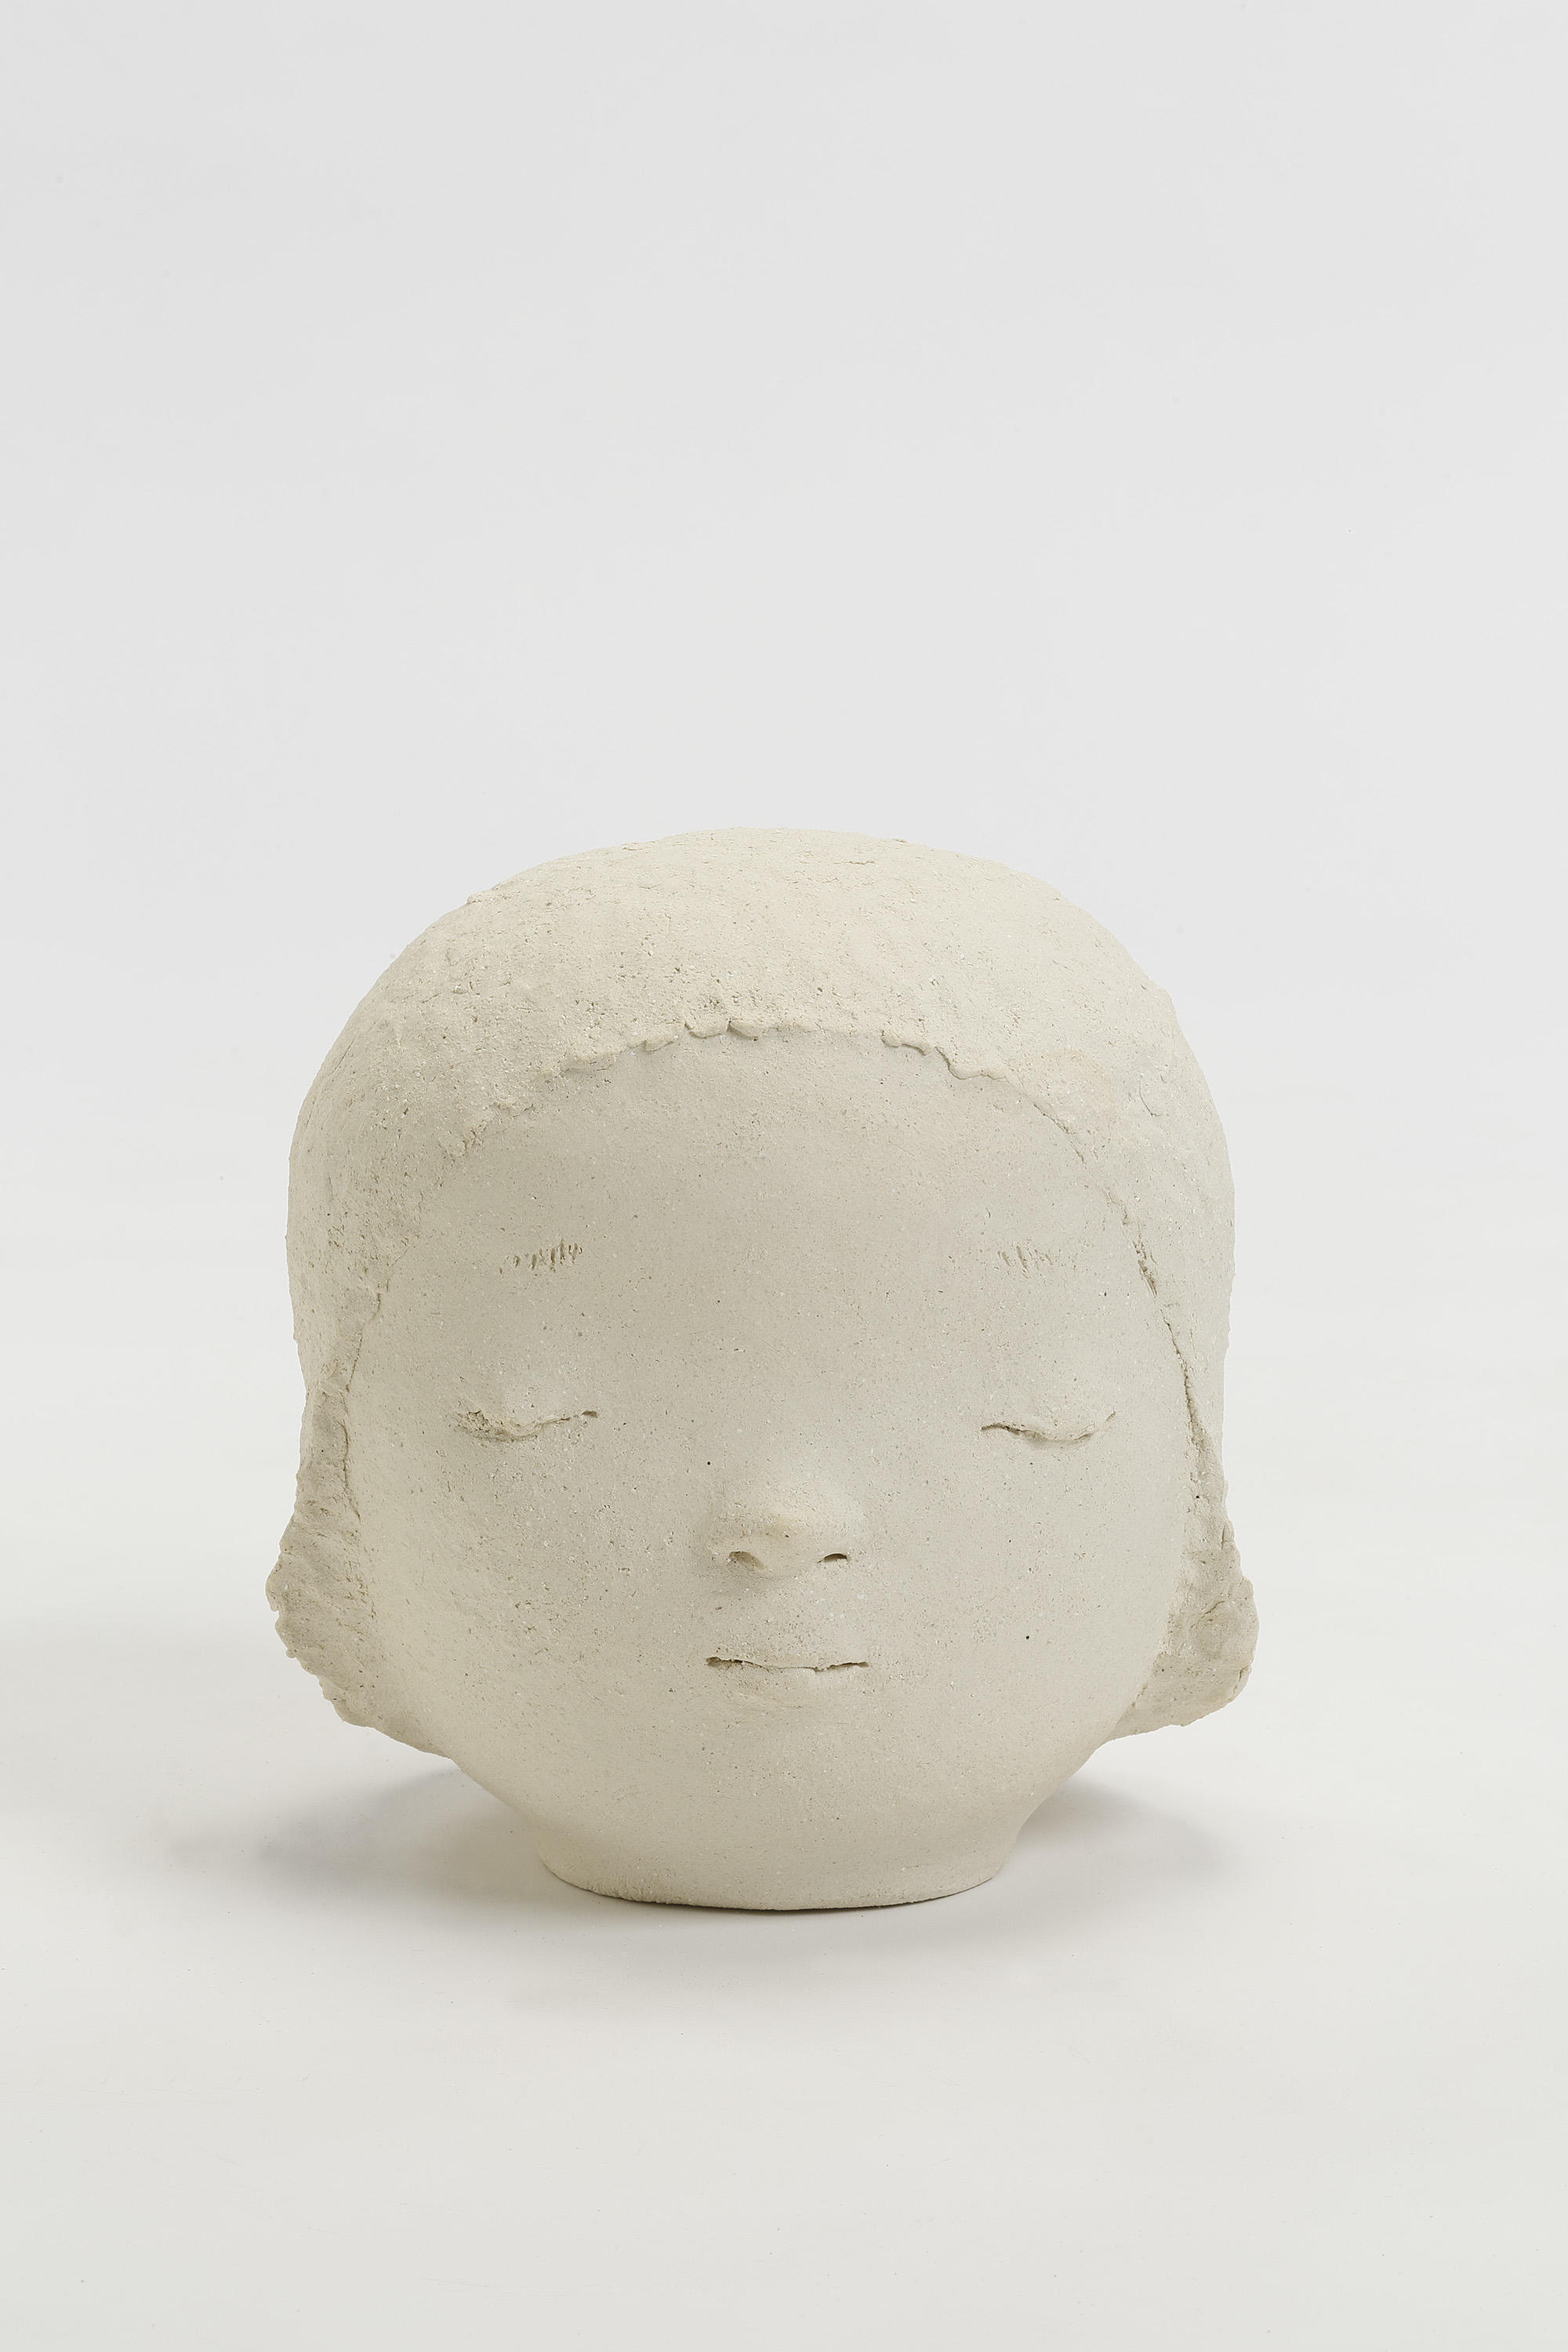 "Yoshitomo Nara, Head 2, 2018,  ceramic,  11"" x 10-3/16"" x 9-9/16"" (27.9 cm x 25.9 cm x 24.3 cm),  SCULPTURE,  No. 68820, view 1,  Alt # C-2018-023, Format of original photography: hi-res TIFF"